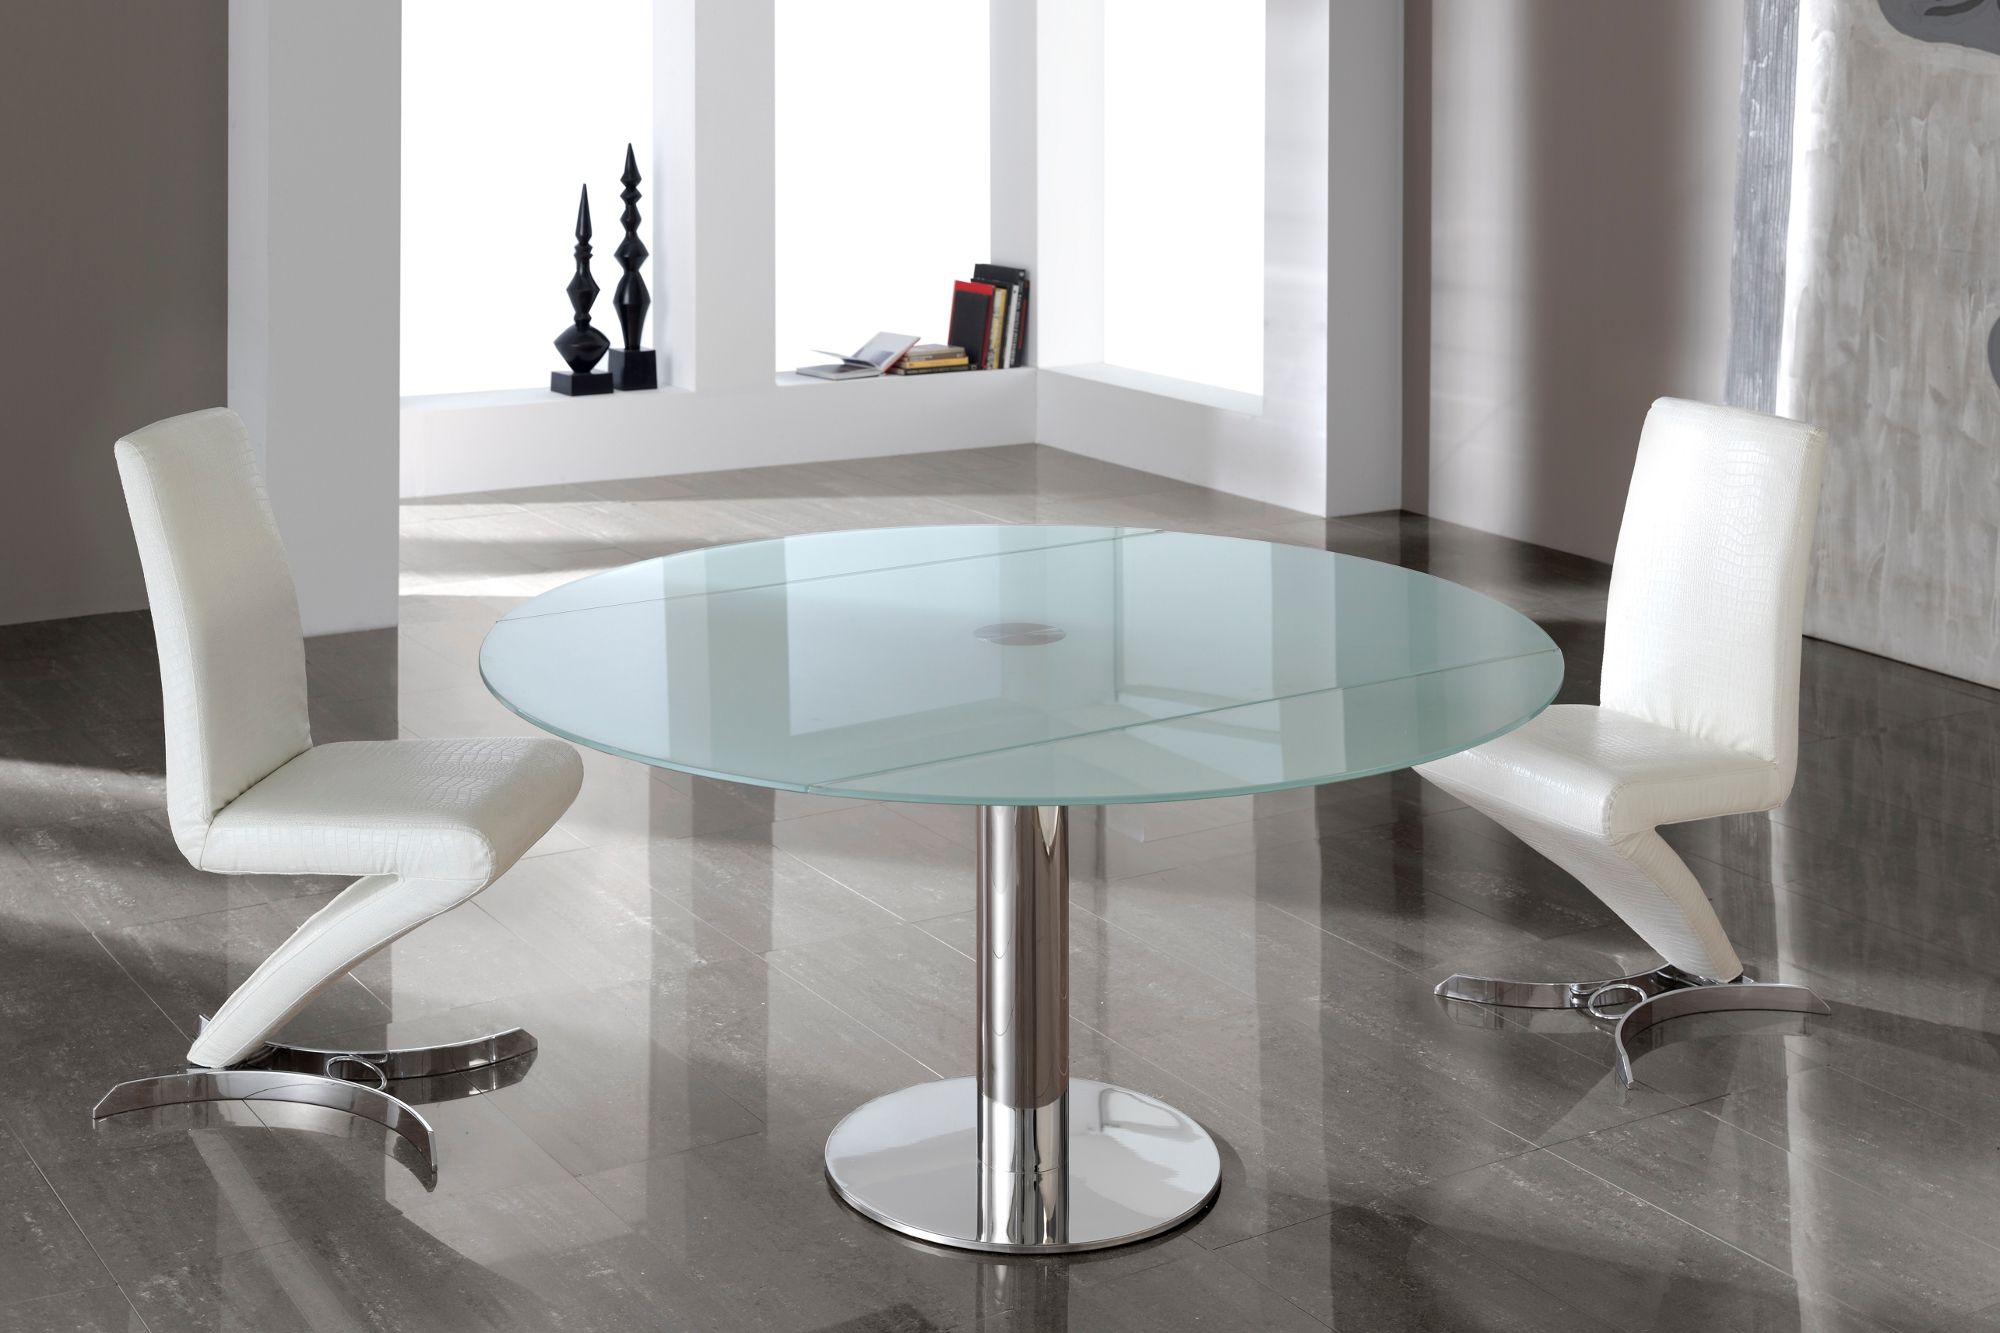 White lacquer dining table round - Modern Extendible White Glass Dining Table This Round Dining Table Is Finished With A Tempered